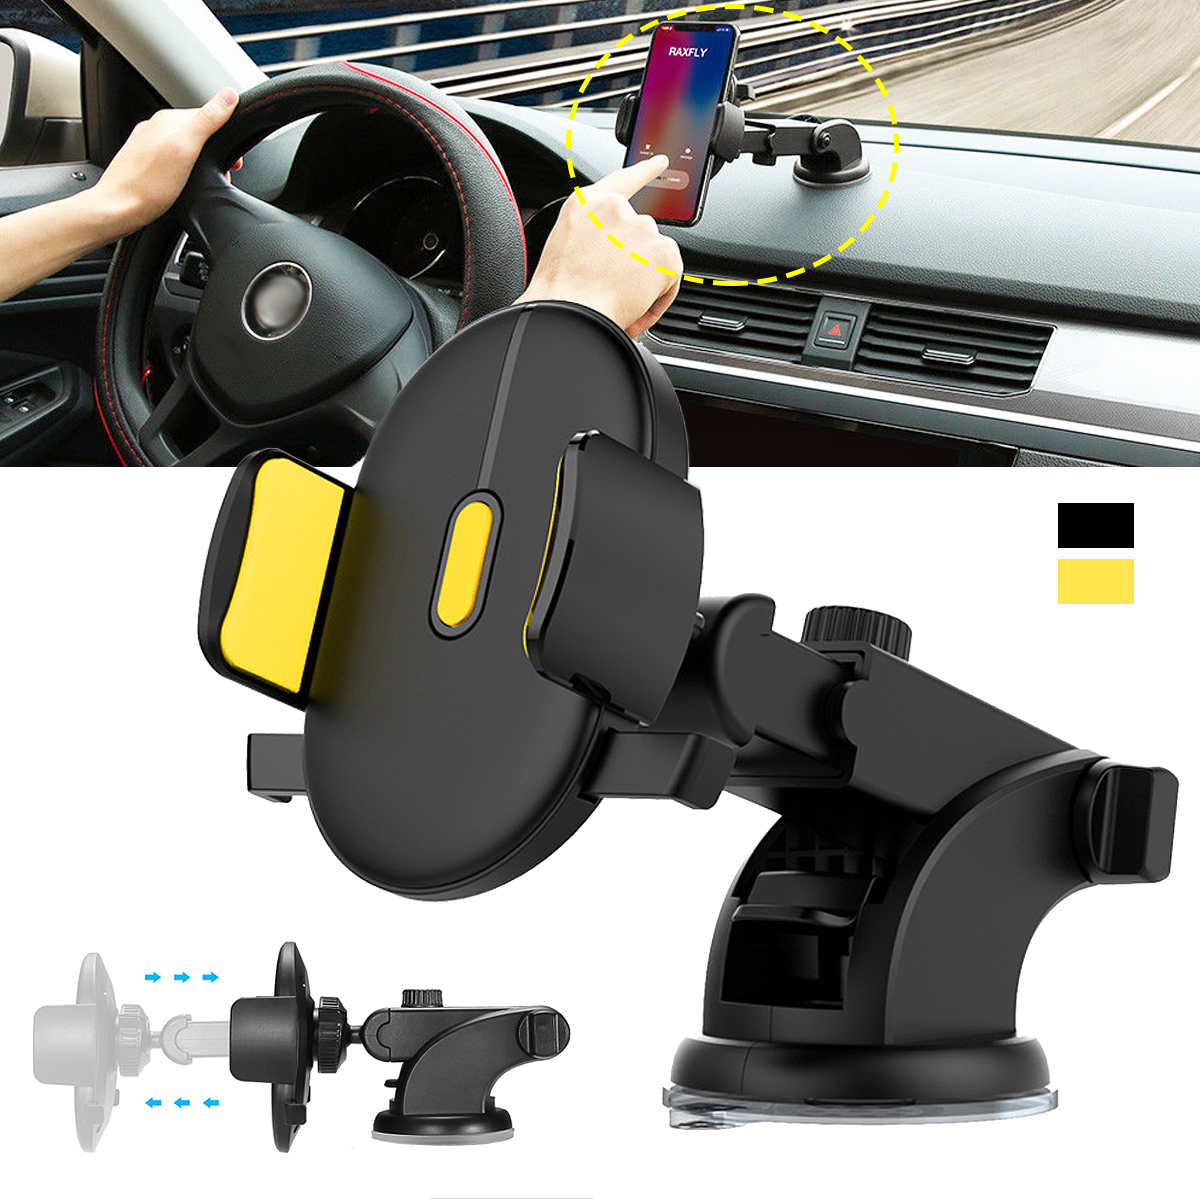 Car Phone Holder Parabrezza Staffa di Montaggio per Xiaomi Co-pilota Del Telefono Del Basamento di Sostegno Del Supporto da Auto per iPhone X Xs max Freeshipping